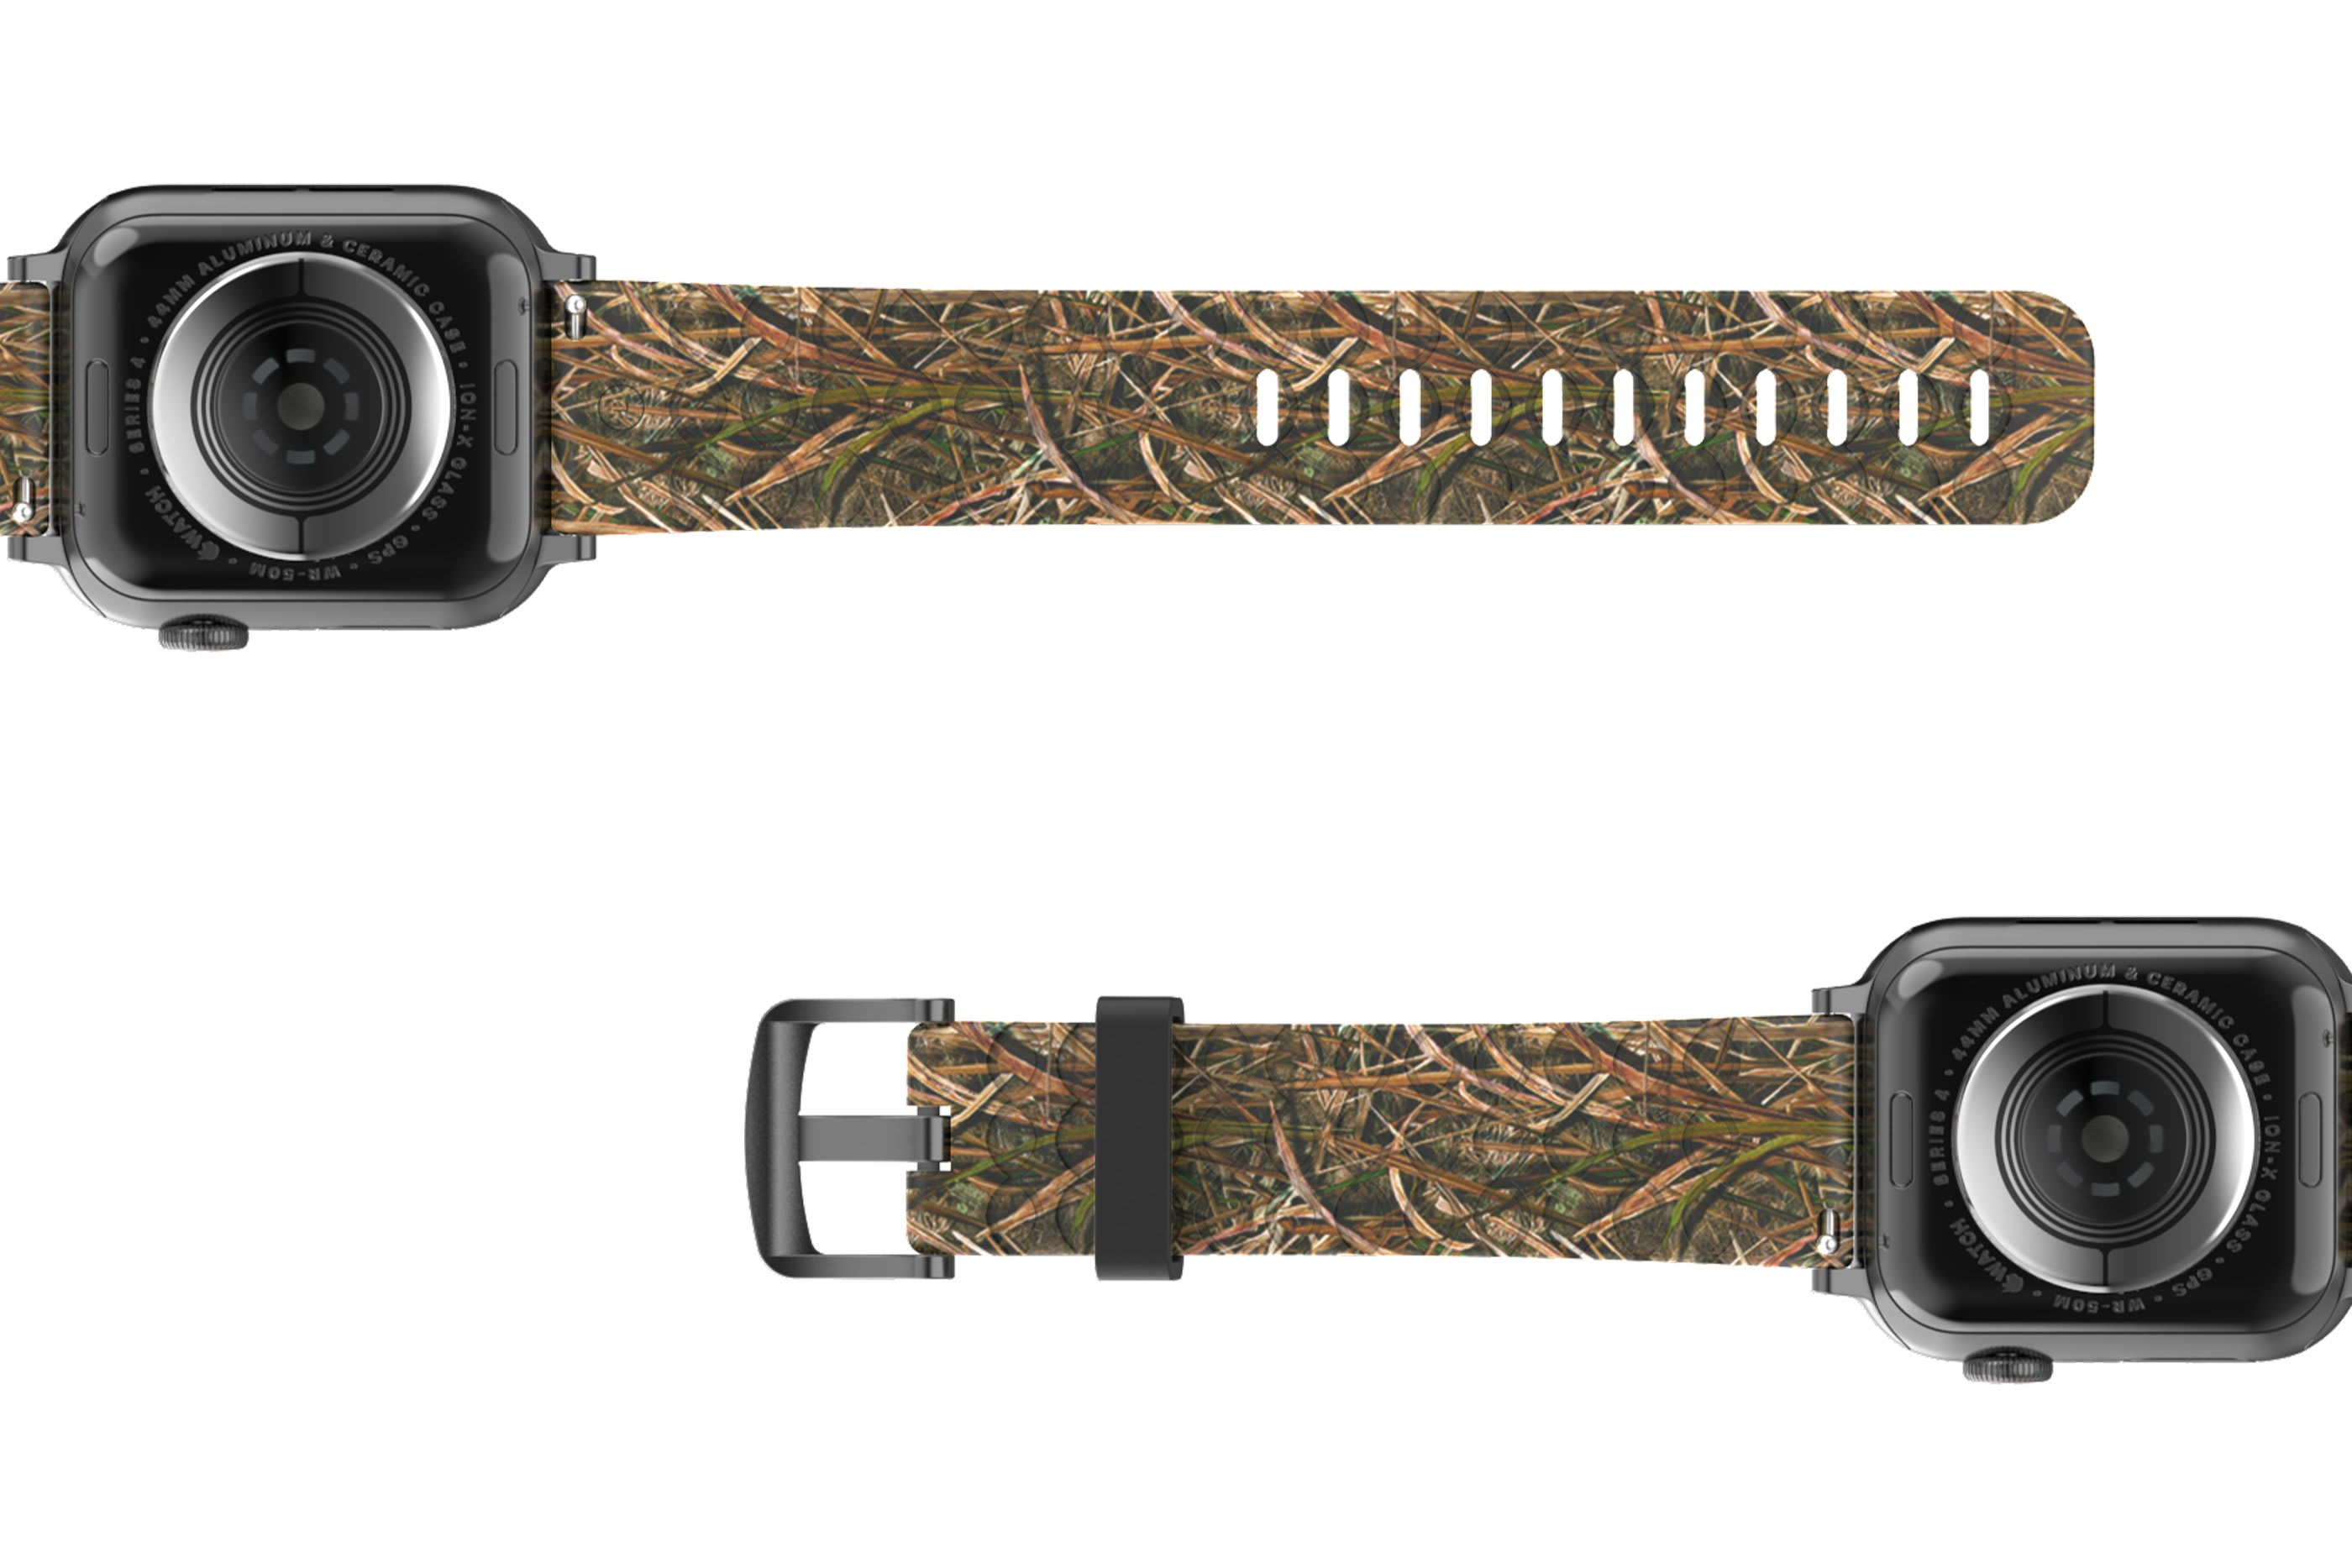 Mossy Oak Blades Apple Watch Band with gray hardware viewed bottom up